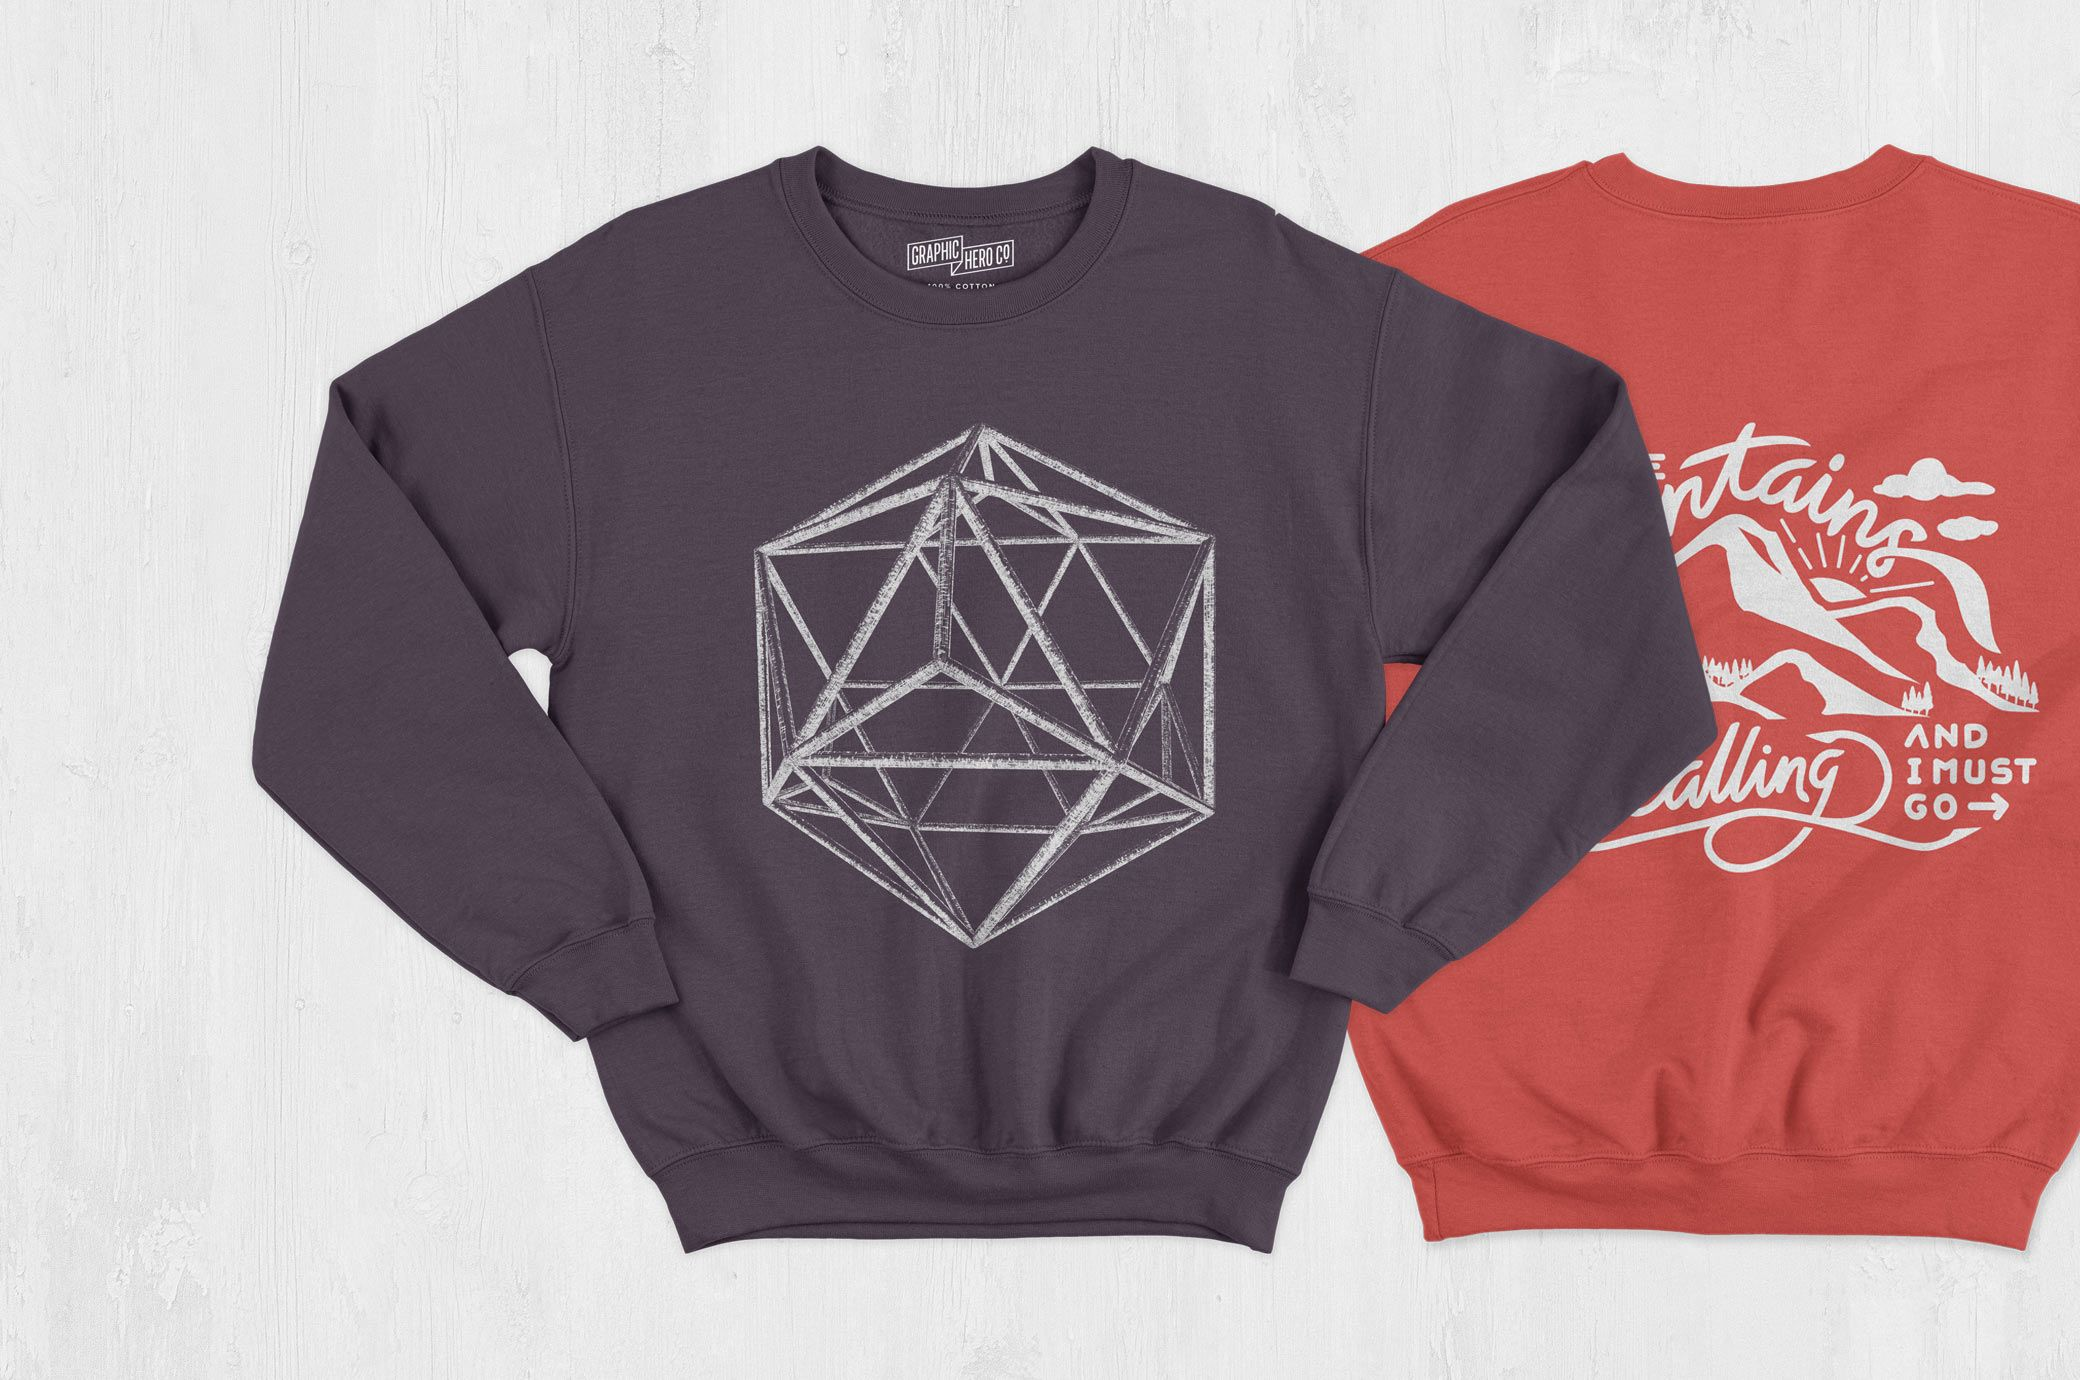 Download While Its Got Too Chilly For T Shirts Get Your Sweatshirt On Perfectly Crafted They Bring The Heat As Well As Absol Sweatshirts Clothing Mockup Shirt Mockup